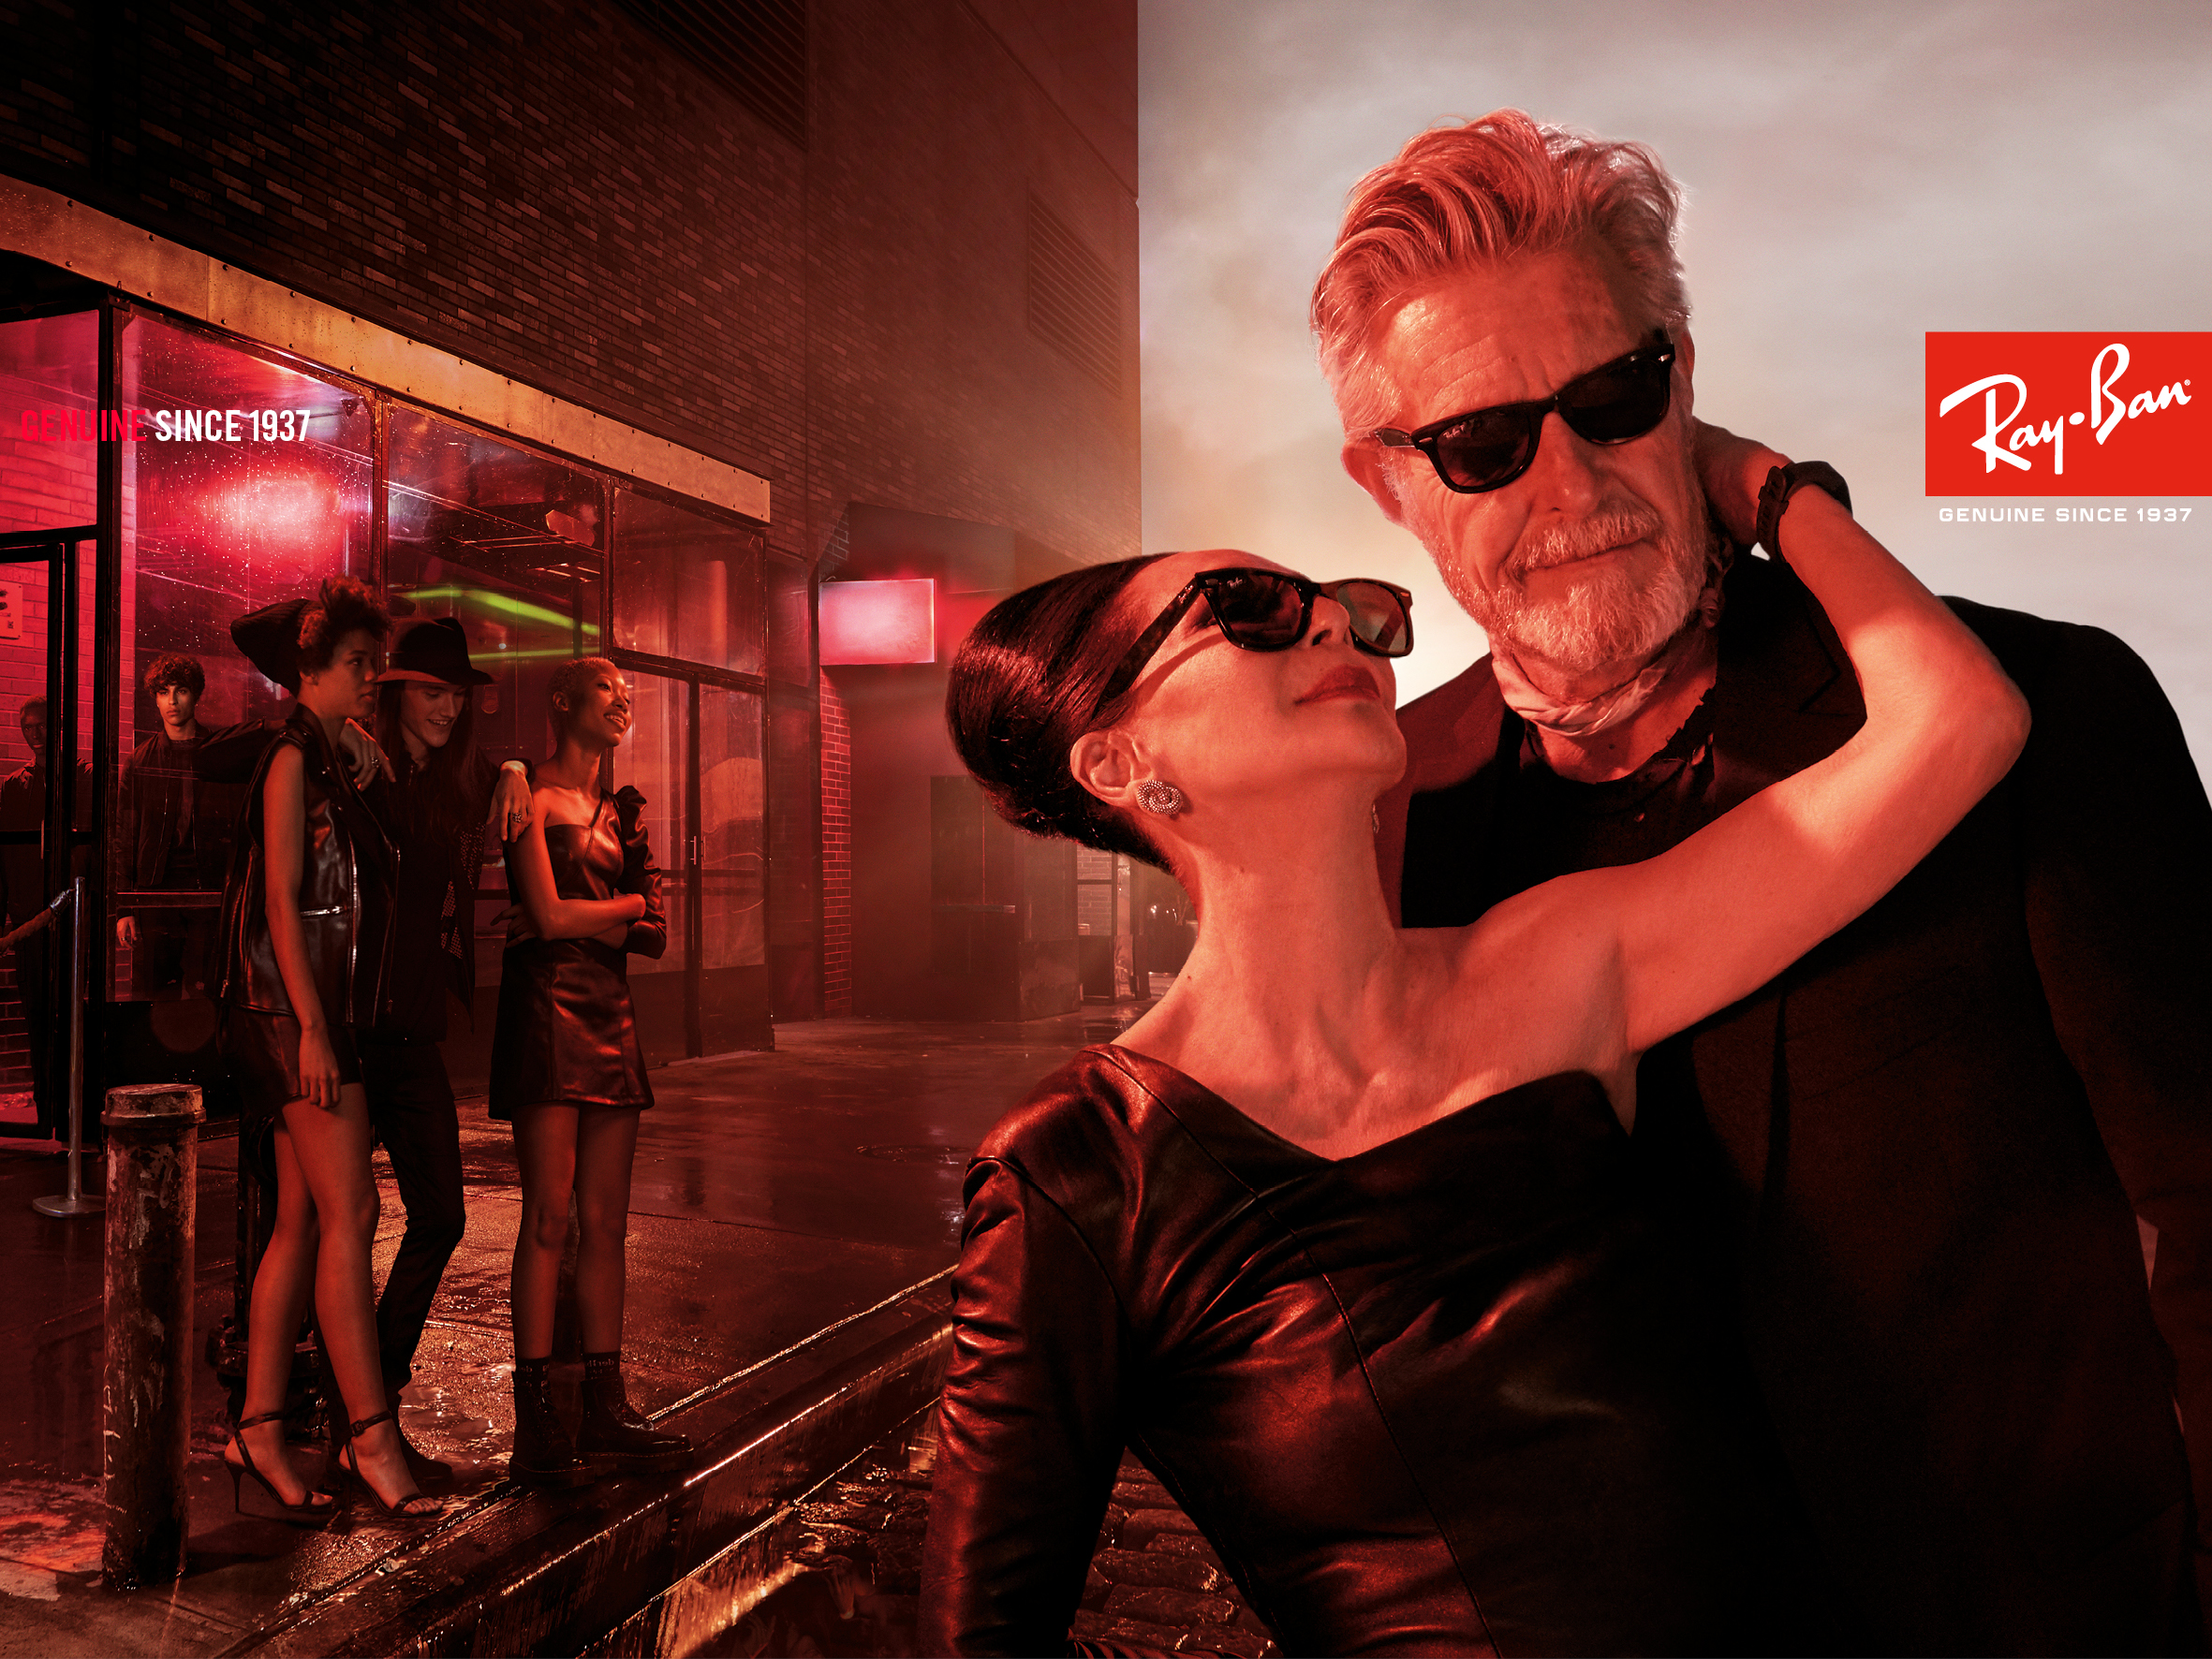 """f6d988ddb6 ... doing this campaign was that it felt authentic in the sense that  whoever wears Ray-Ban takes on their own identity and the glasses do not  wear them."""""""